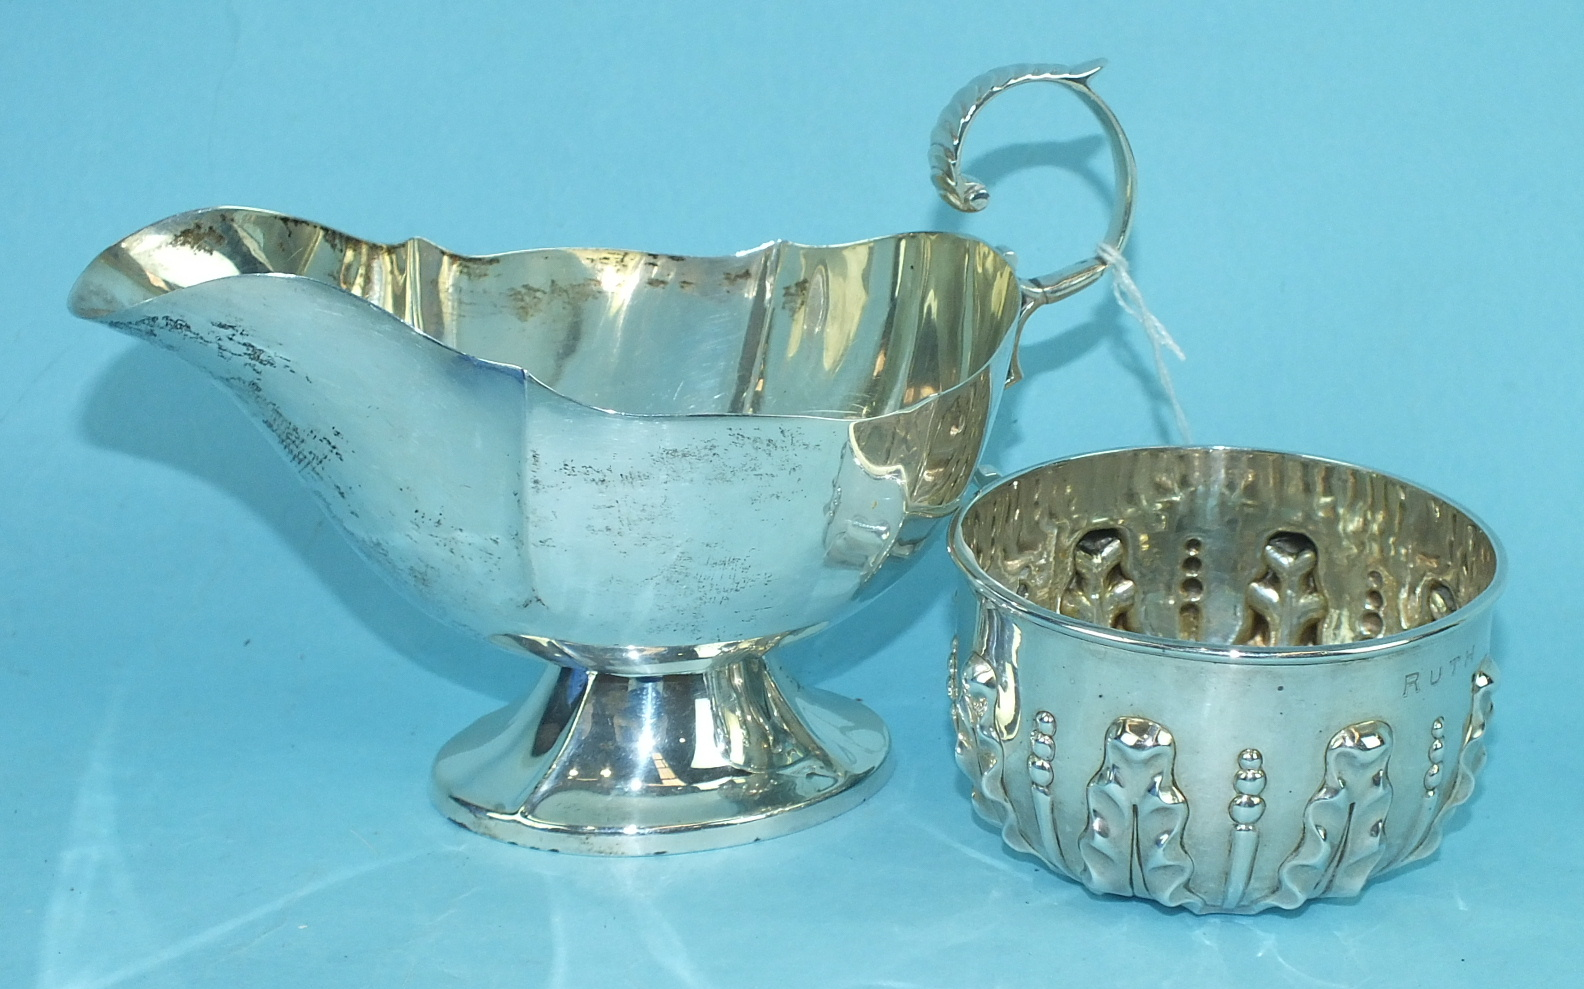 Lot 444 - A silver sauce boat of hexagonal form with scroll handle and loaded base, 12cm high, London 1911,